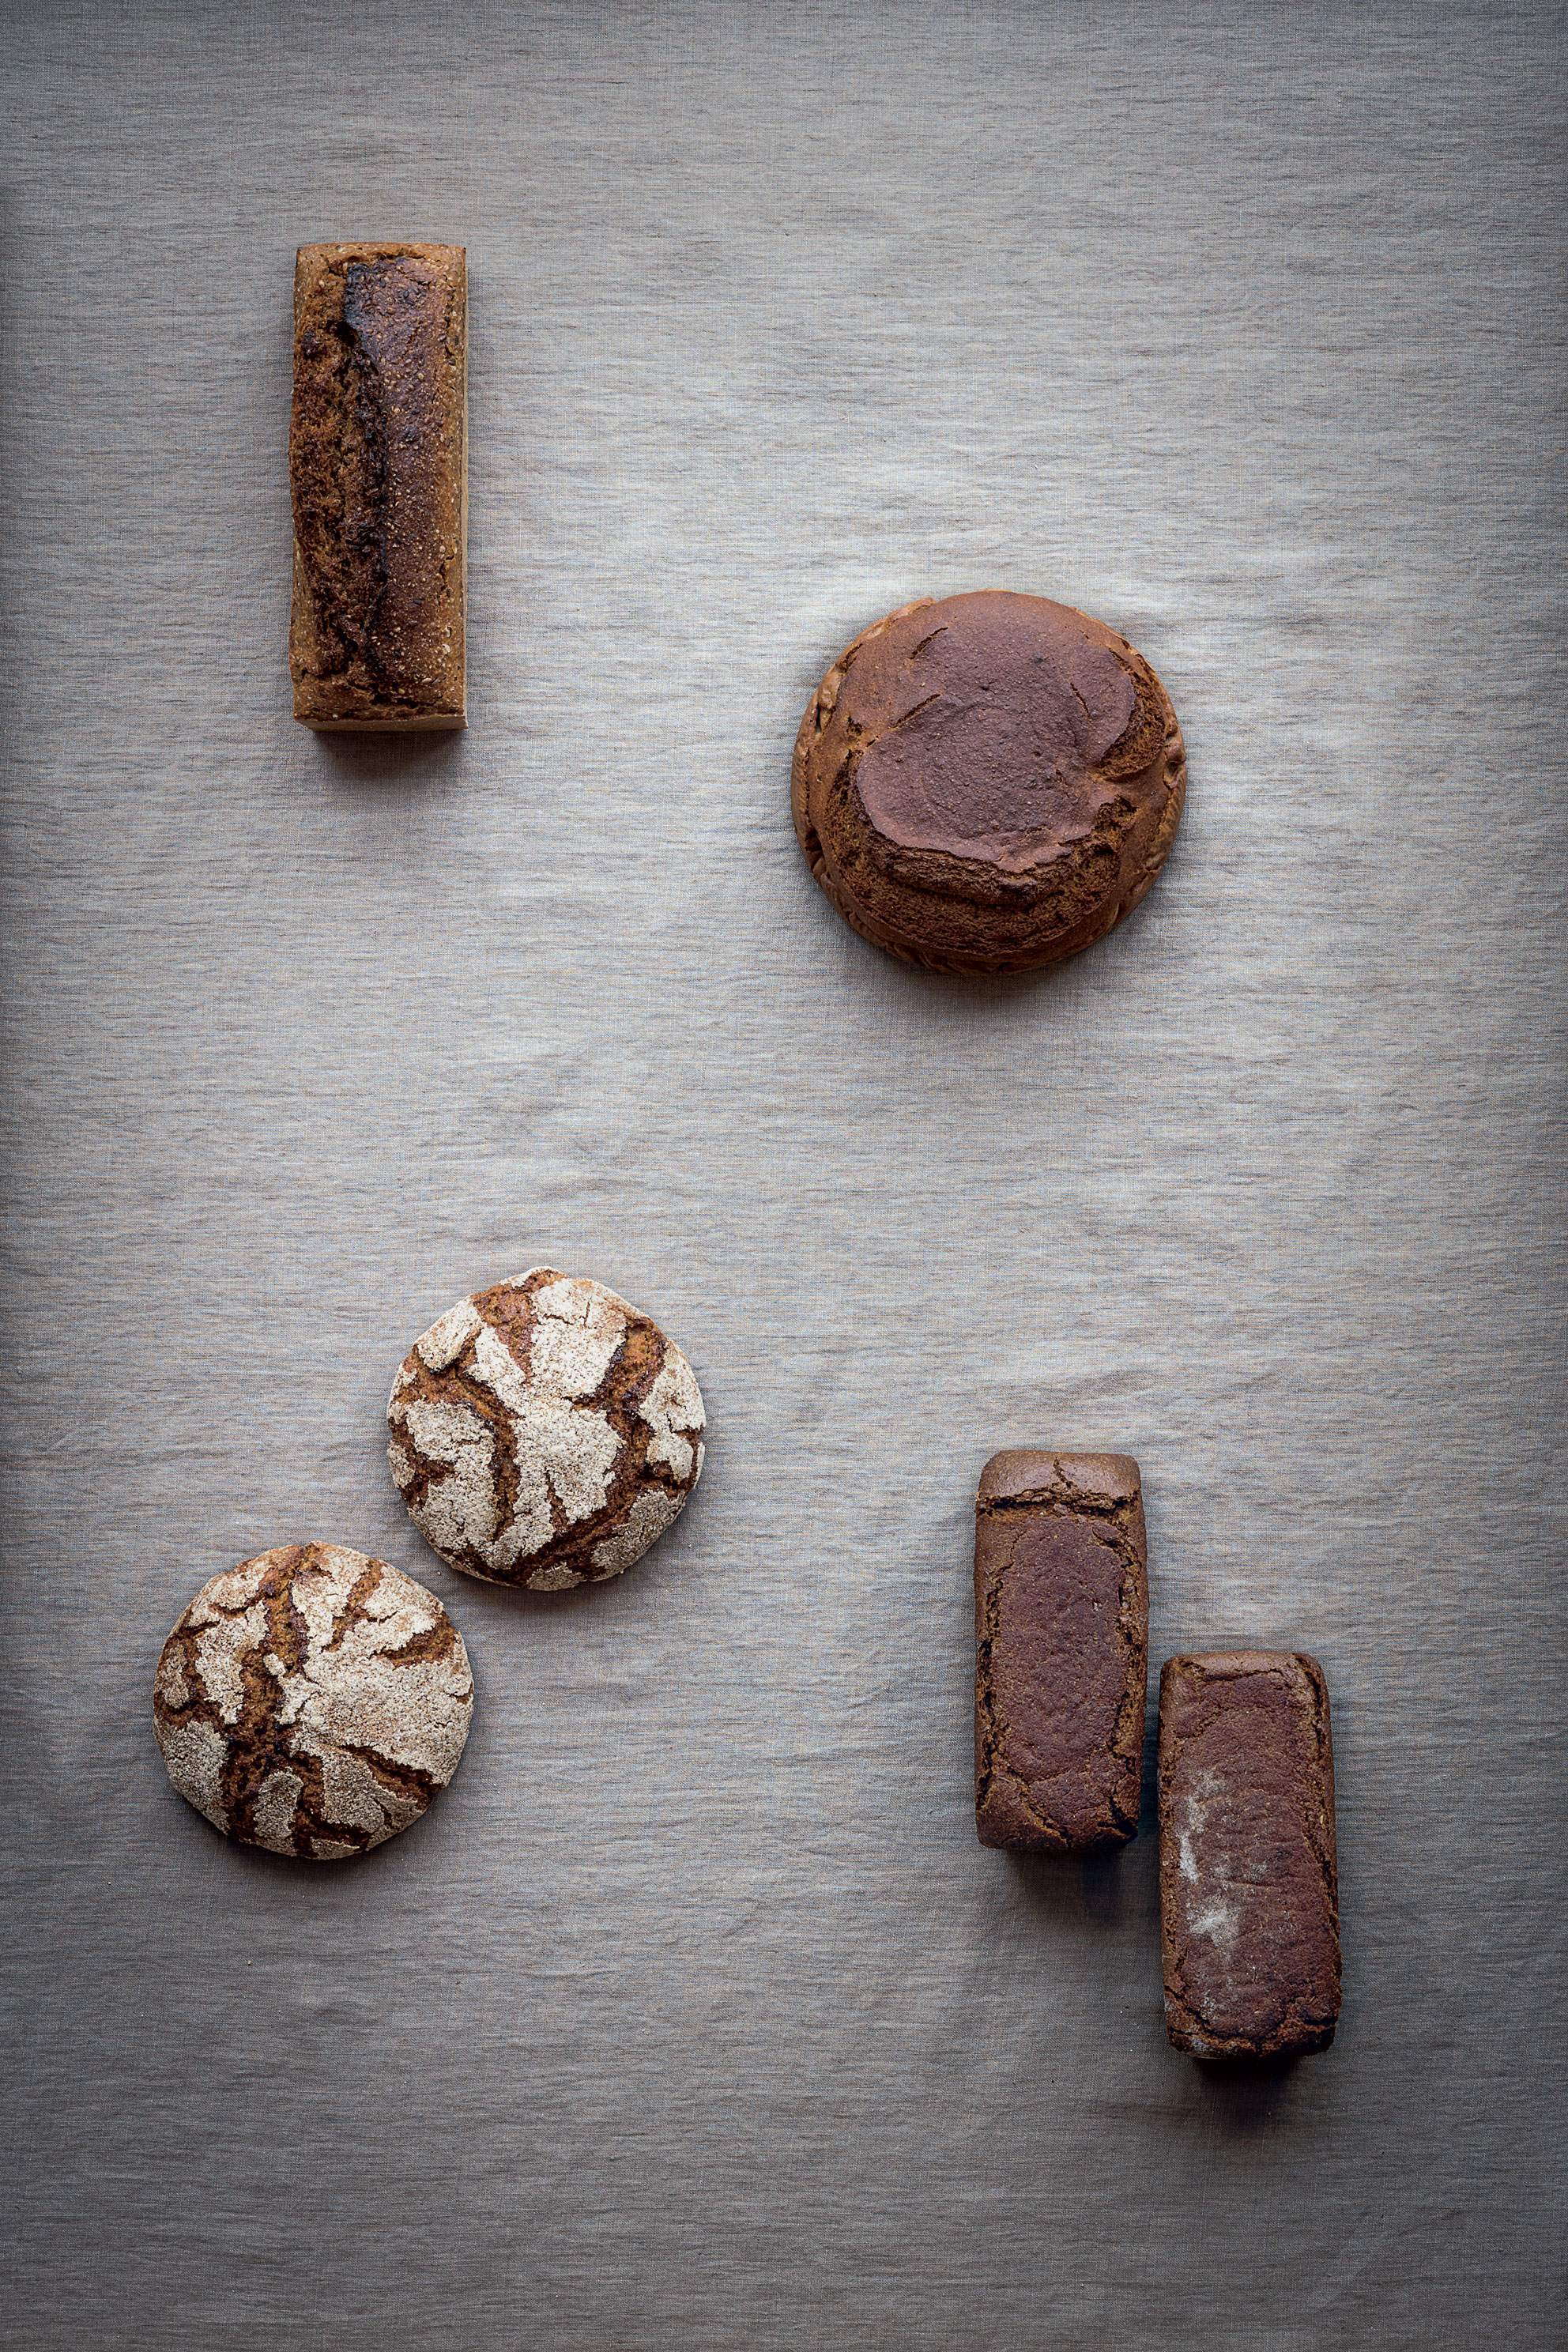 Icelandic rye bread (top right), alongside other rye loaves from Denmark (top left), Scania, southern Sweden (bottom right) and Finland (bottom left)